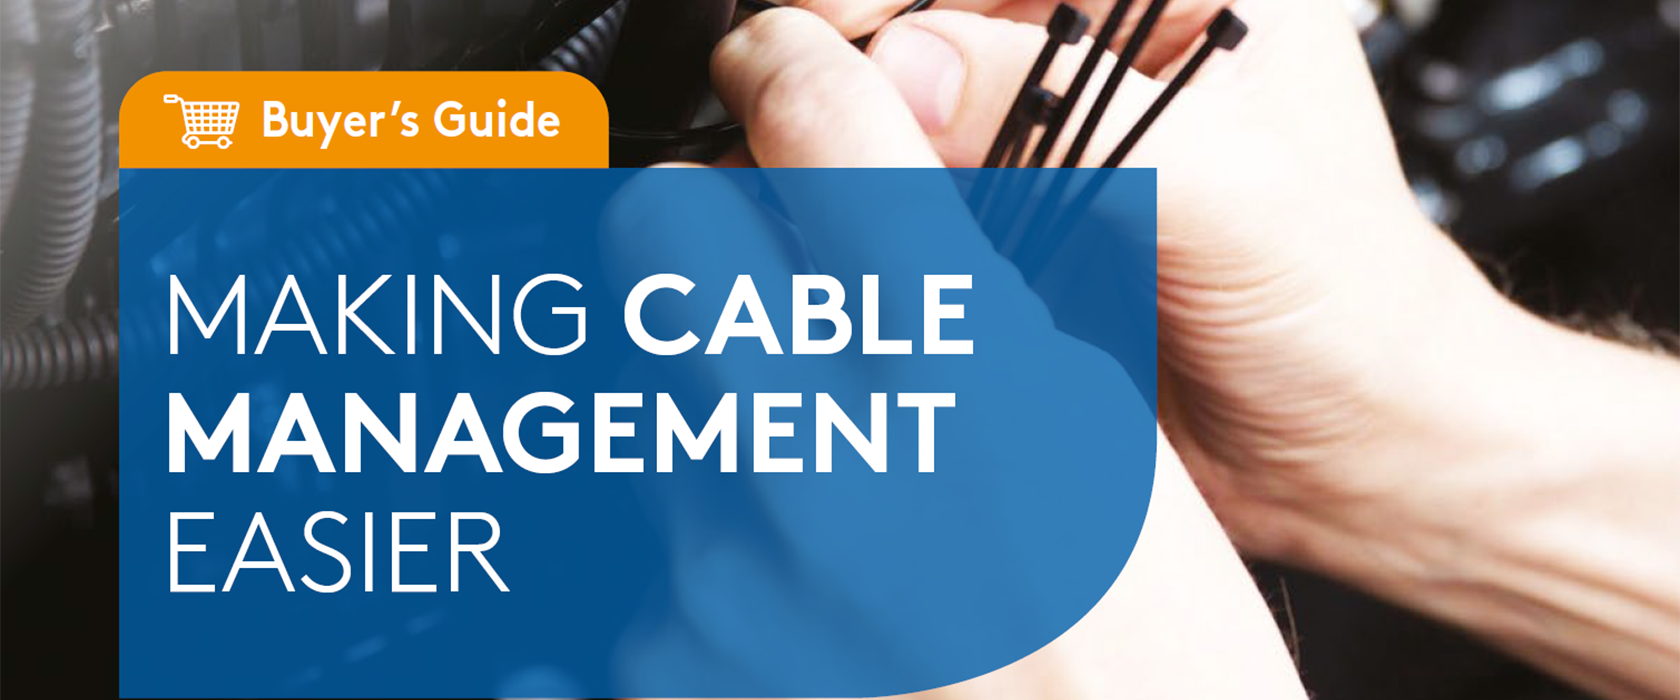 Cable Management Buyer's Guide